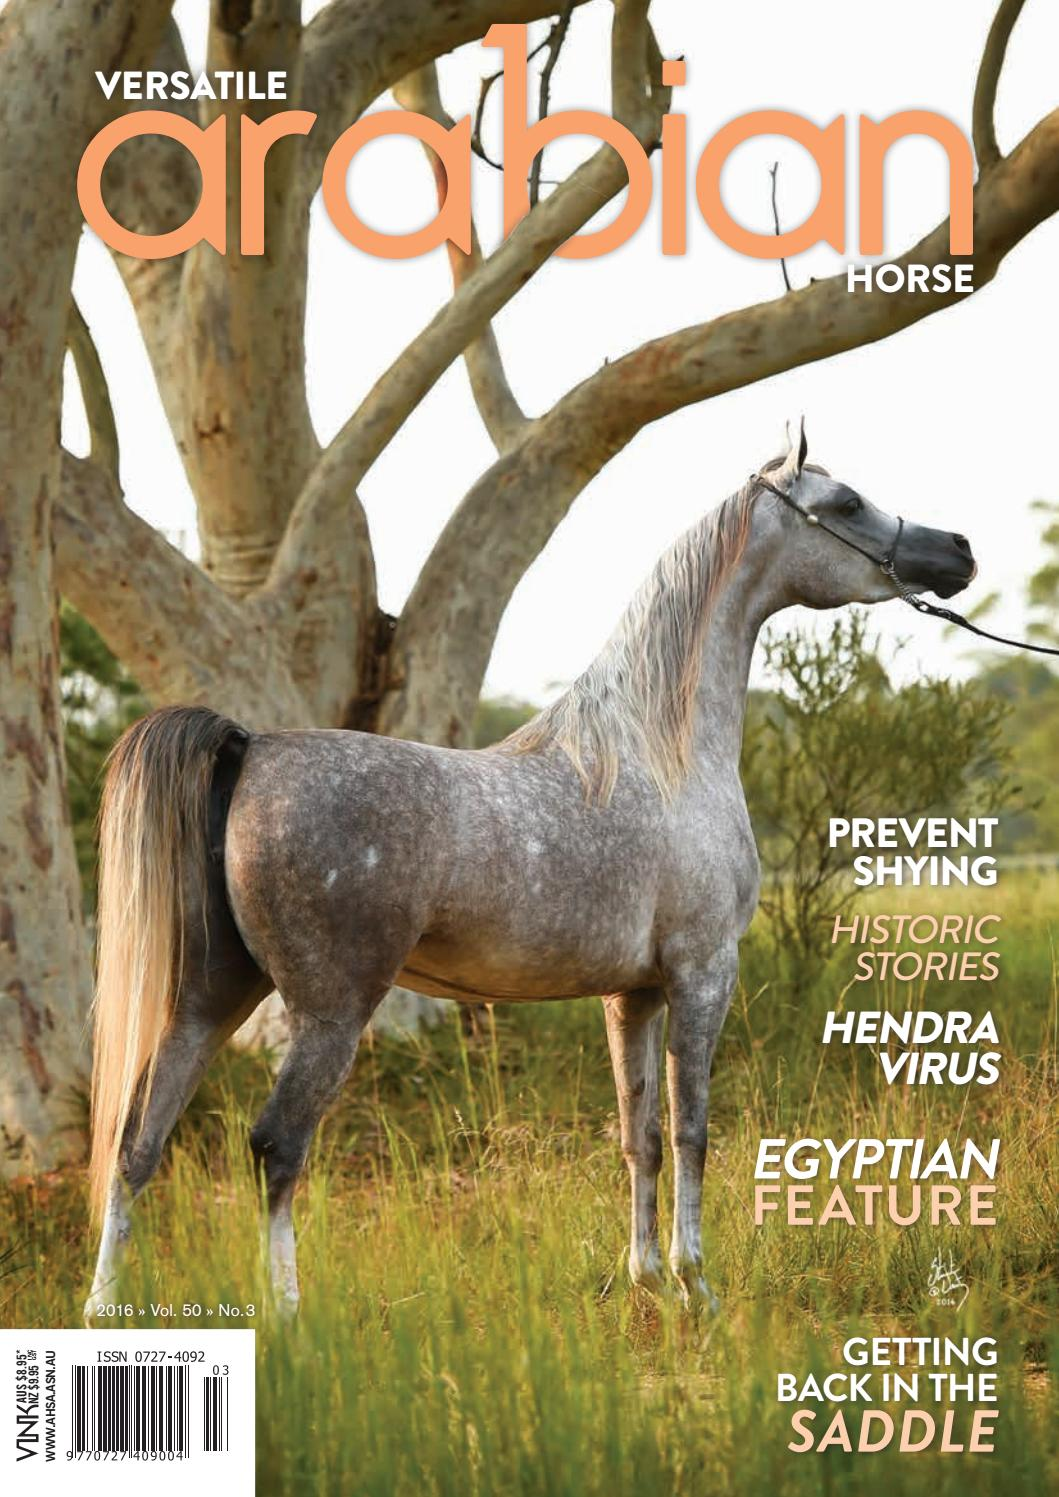 Animal Came In Her Mouth Porn versatile arabian horse sept16vink publishing - issuu